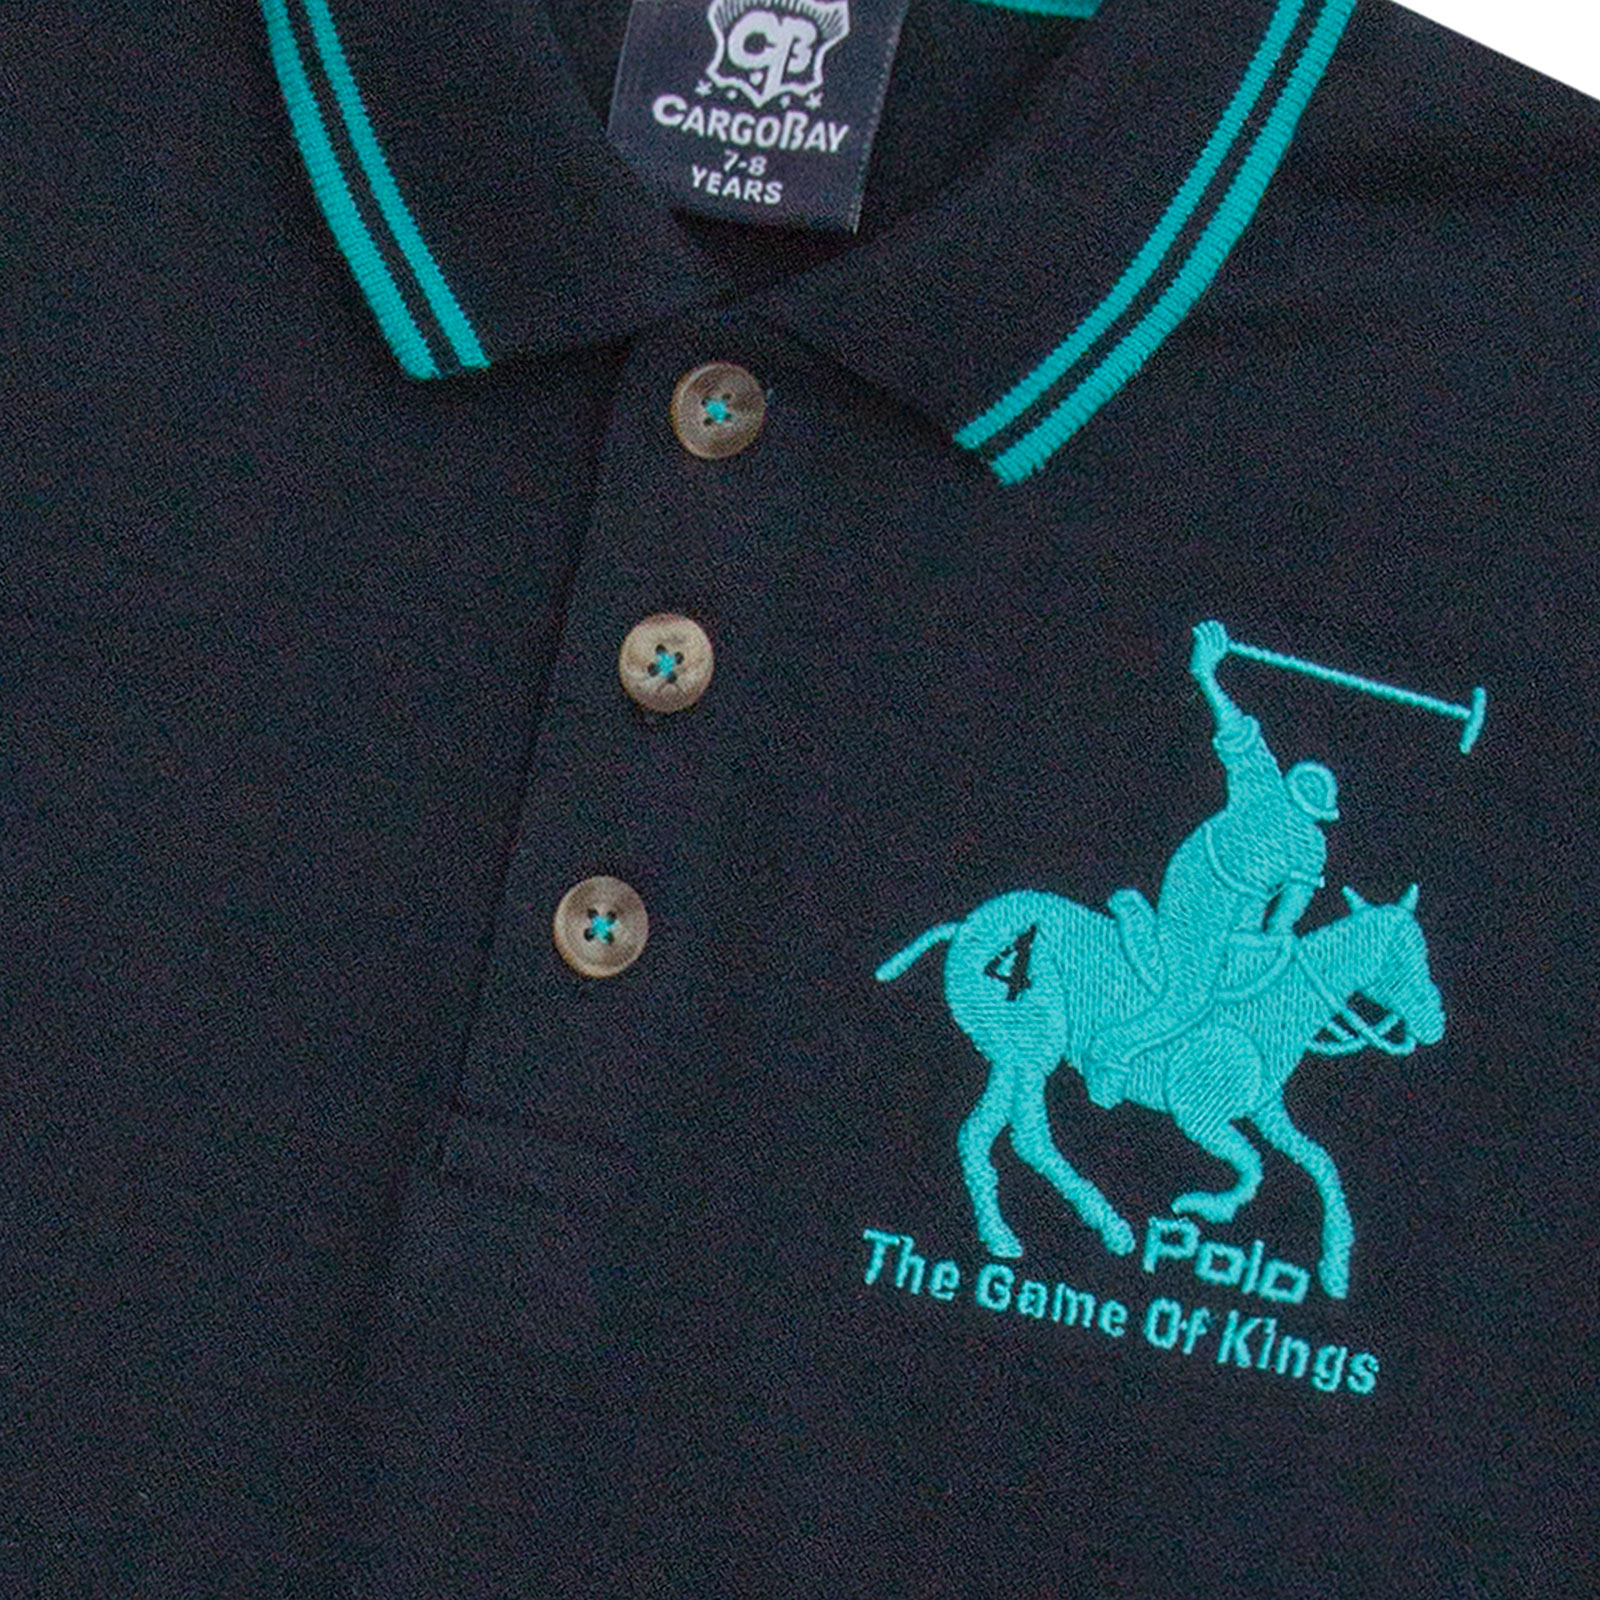 Boys-T-Shirt-Horse-Embroidery-Polo-Cotton-Top-Age-2-3-4-5-6-7-8-9-10-11-12-13-Yr thumbnail 25